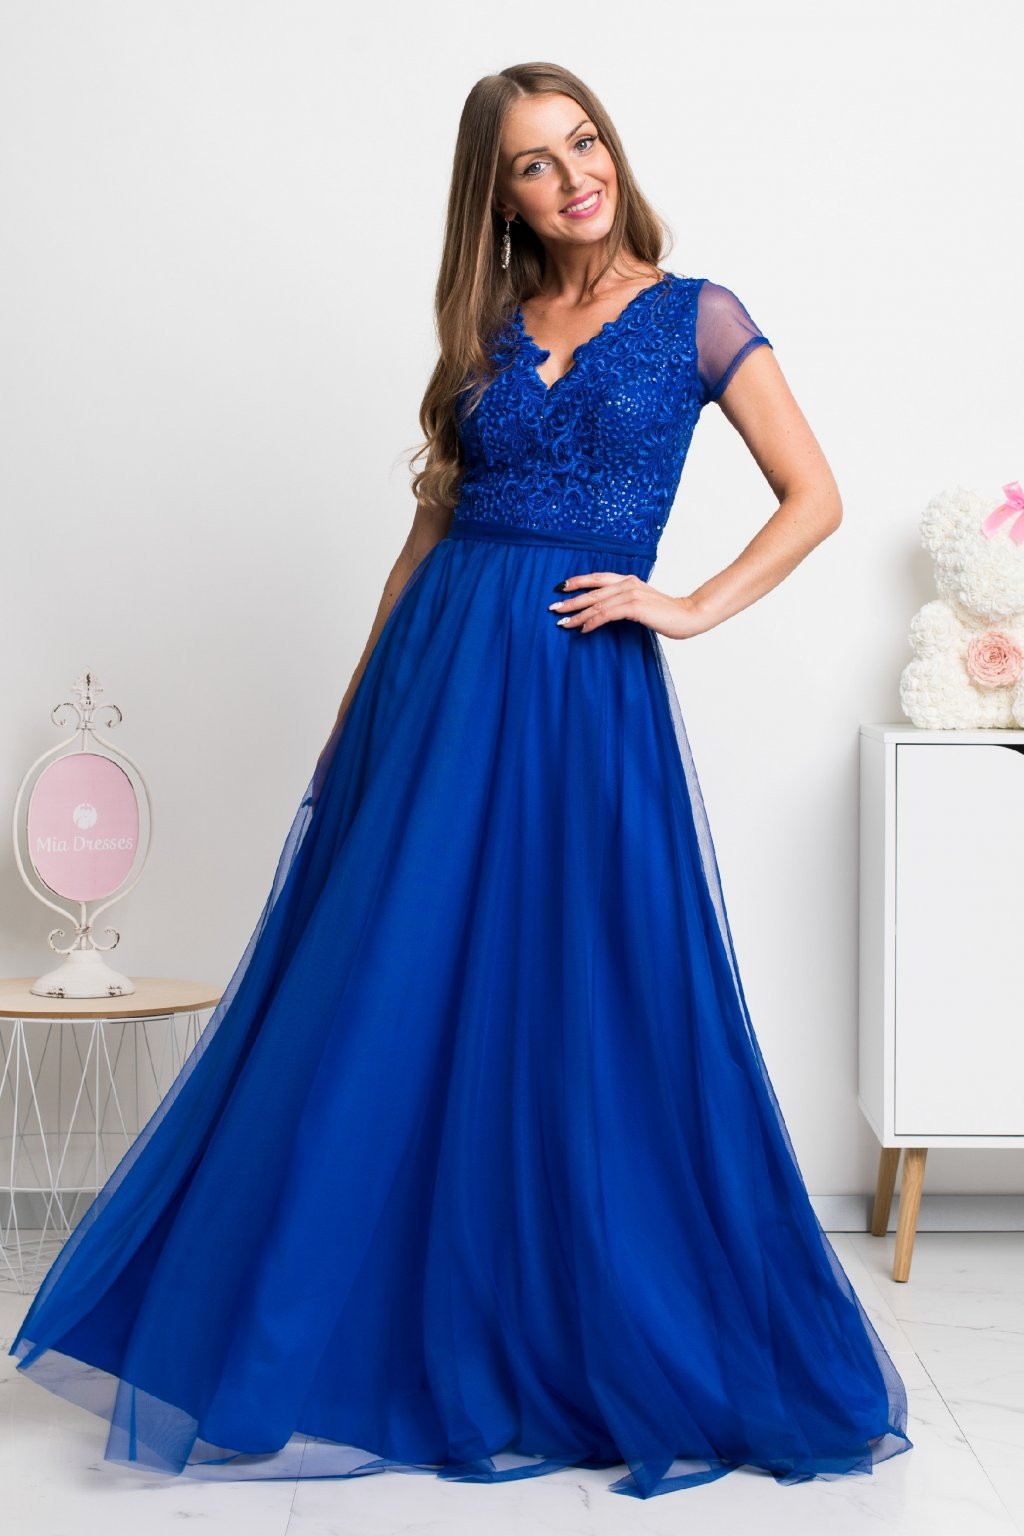 Blue tulle and lace formal dress